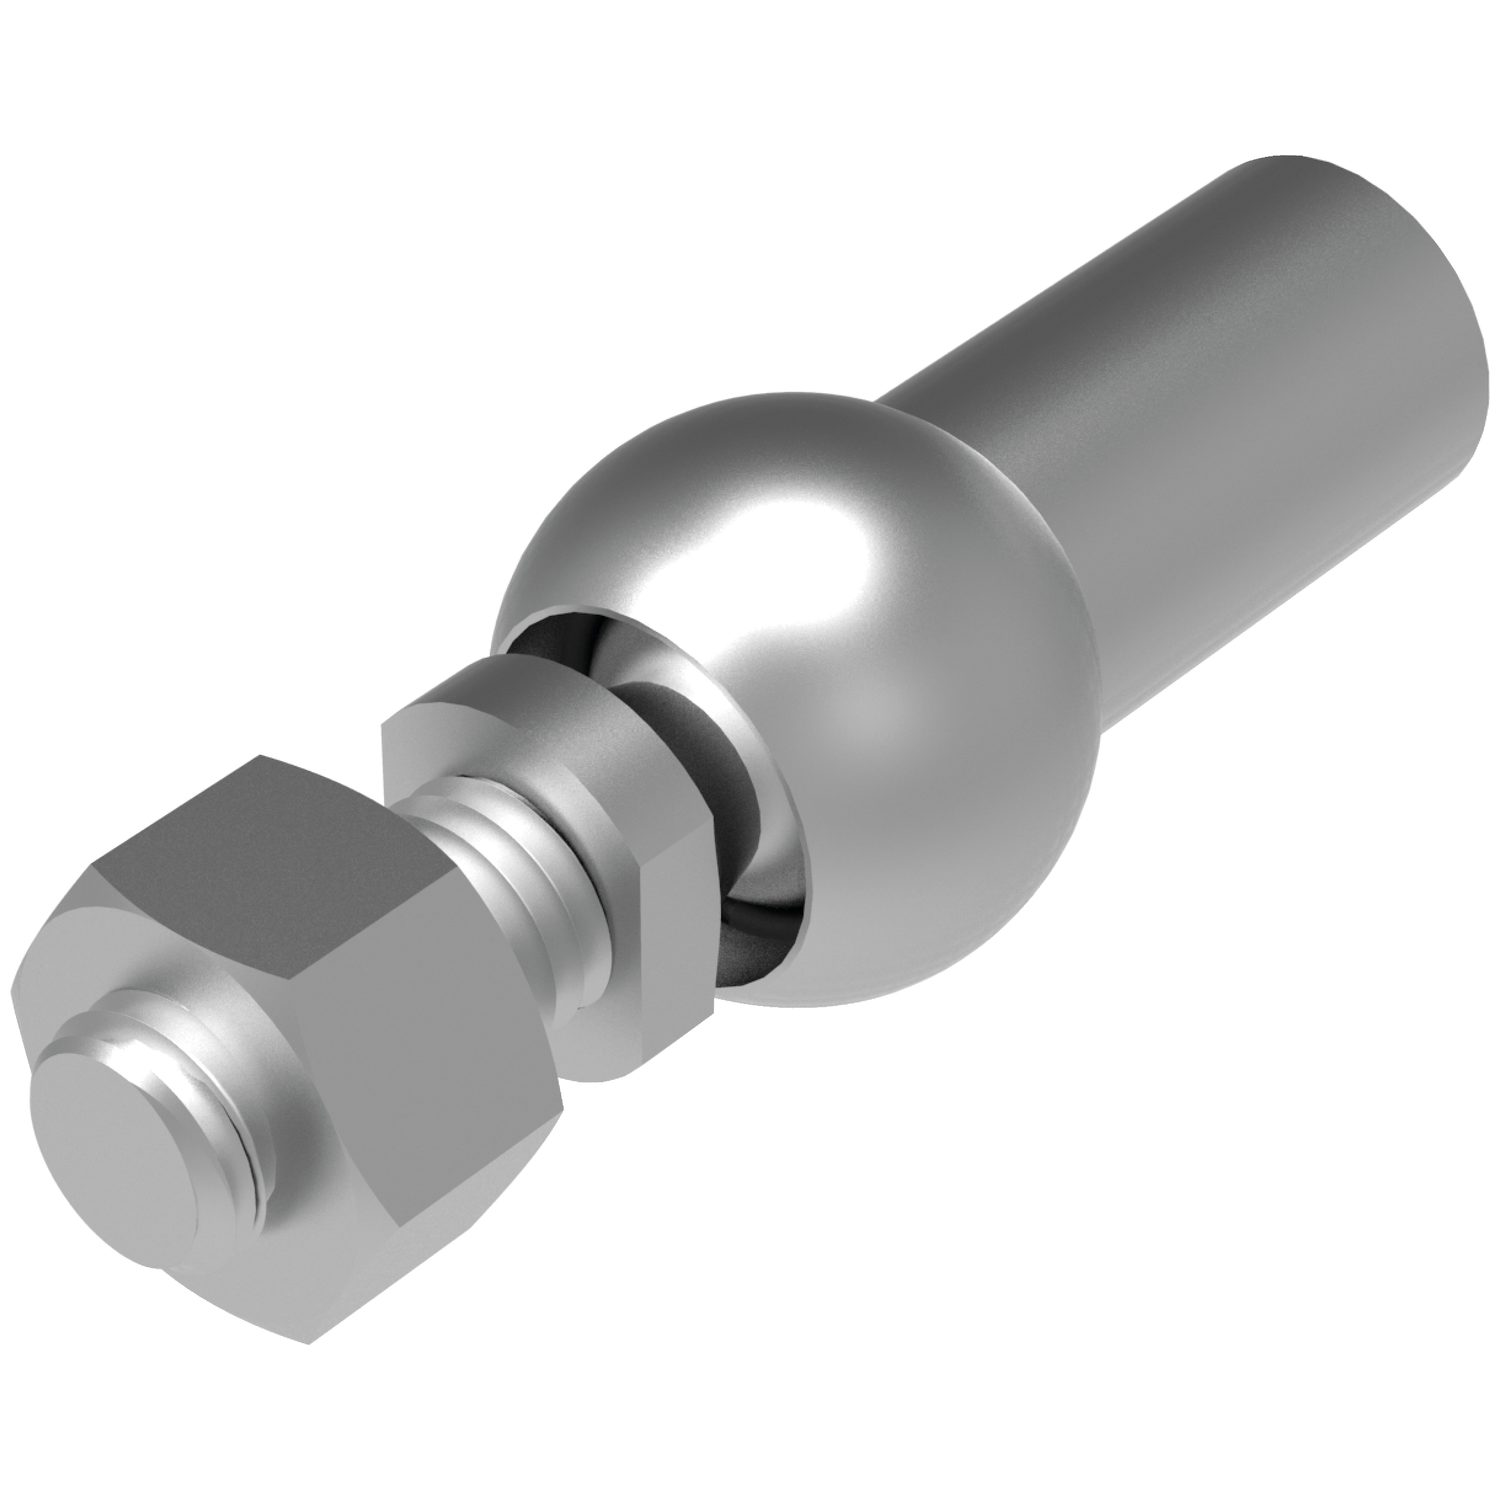 R3501 - Axial Ball and Socket Joints